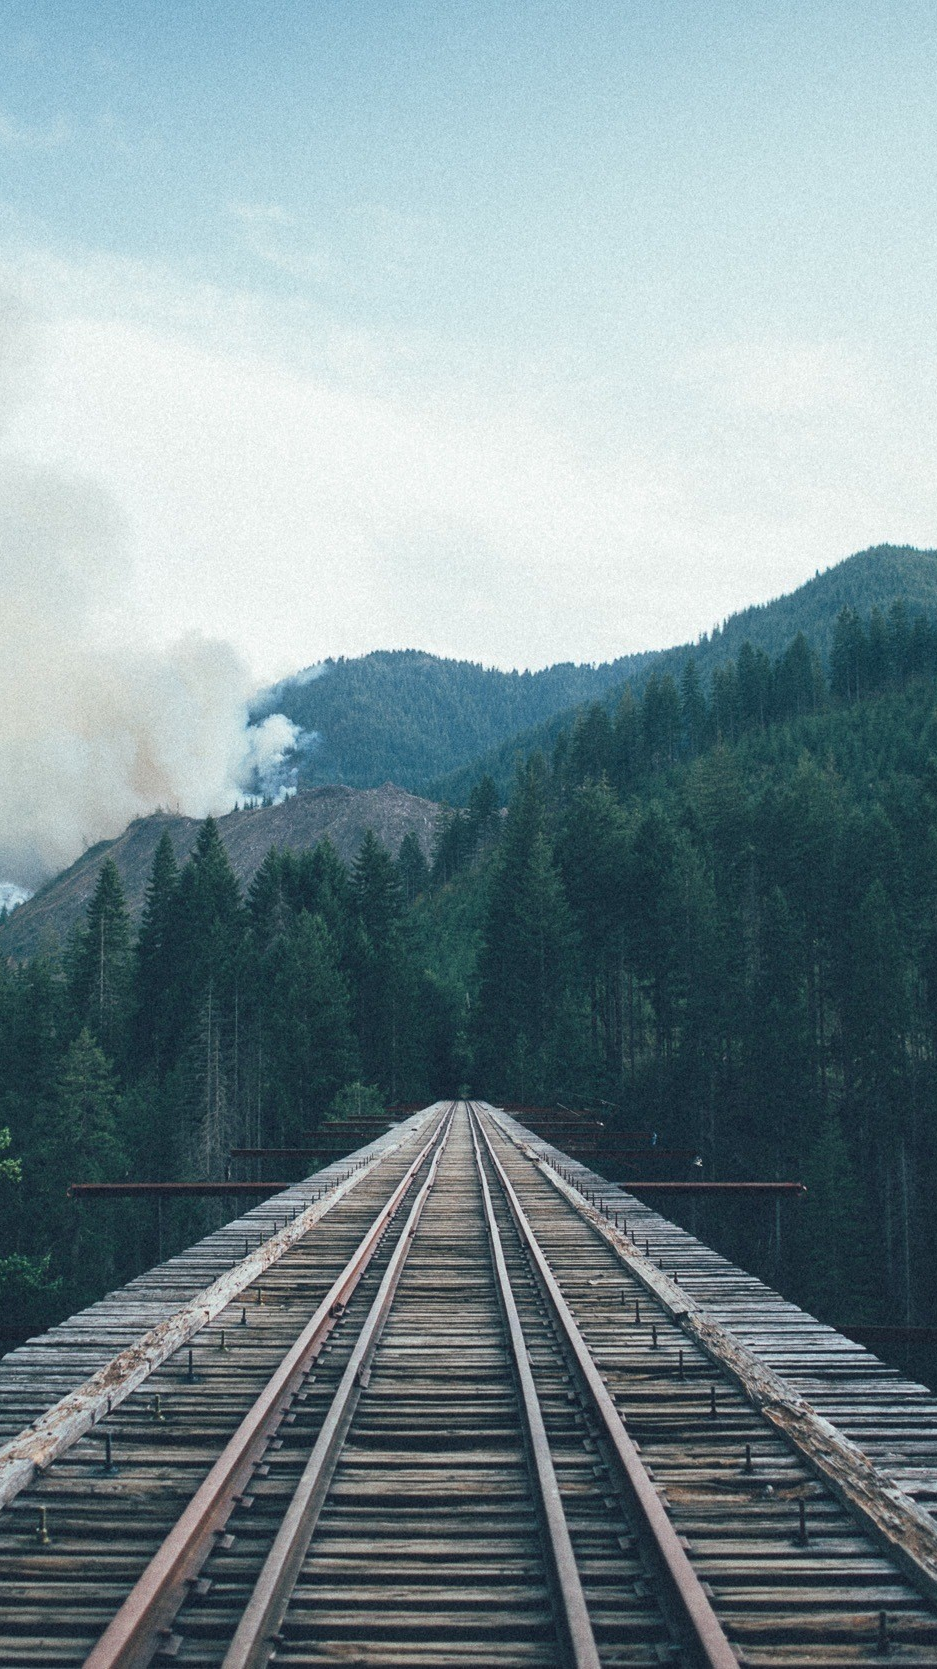 Train-to-Forest-Railway-Tracks-Forest-Mountains-iPhone